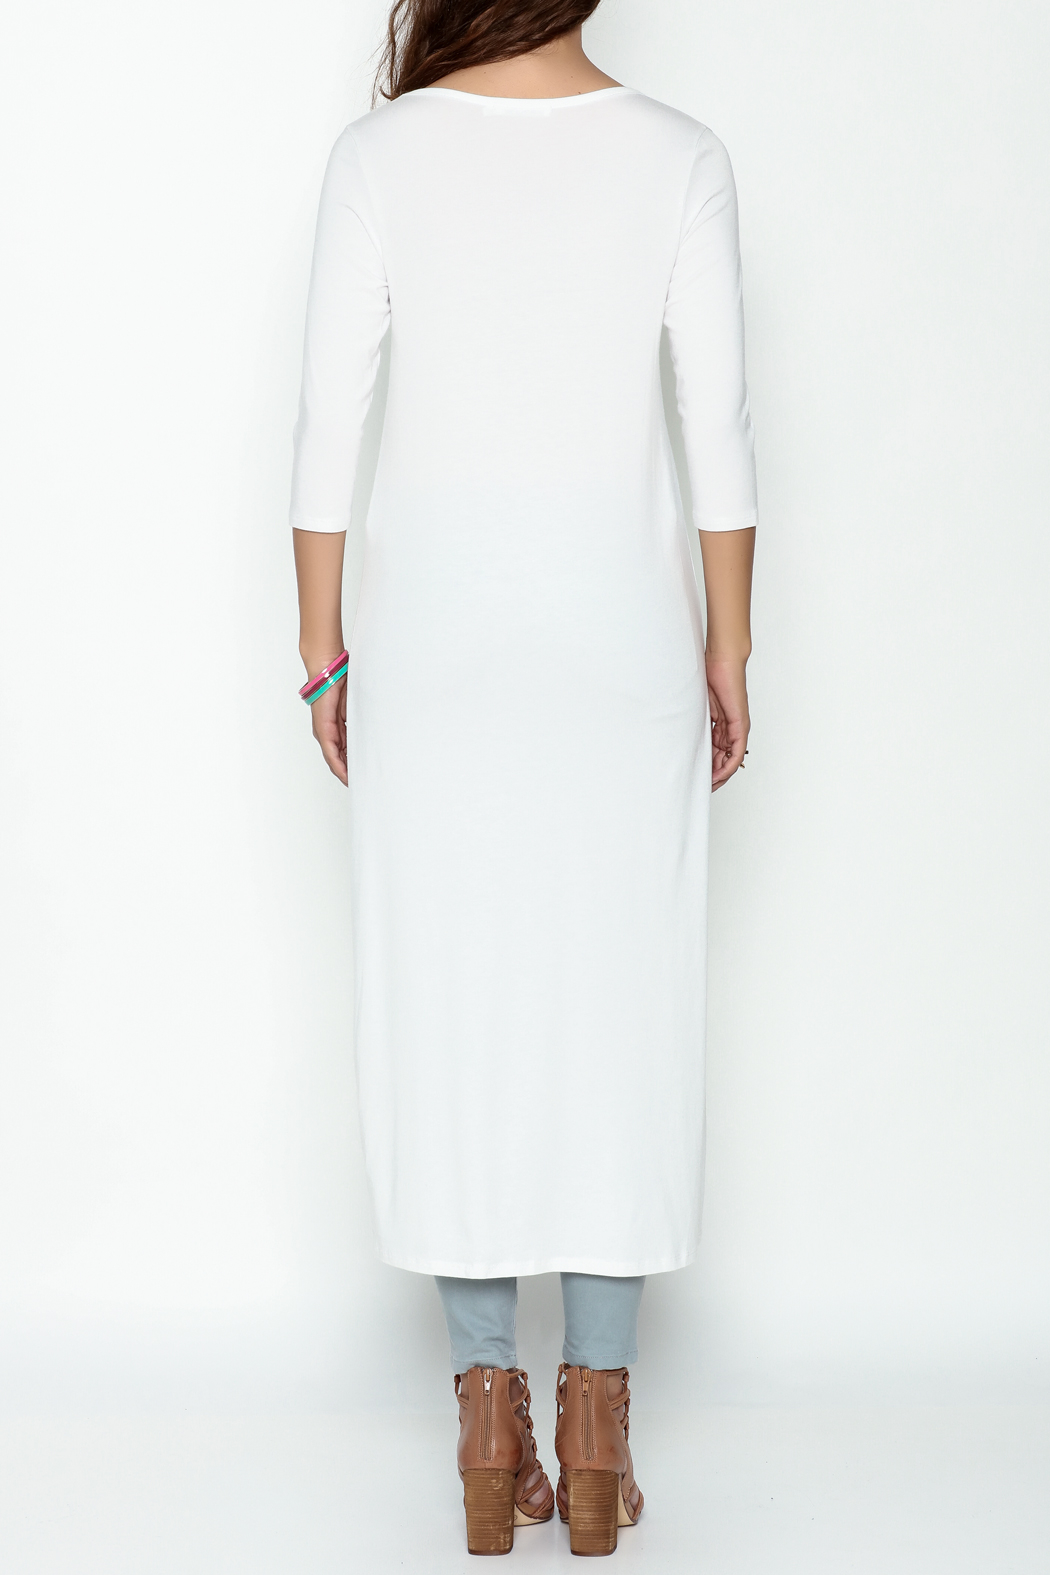 Beaux Jours The Split Tunic - Back Cropped Image